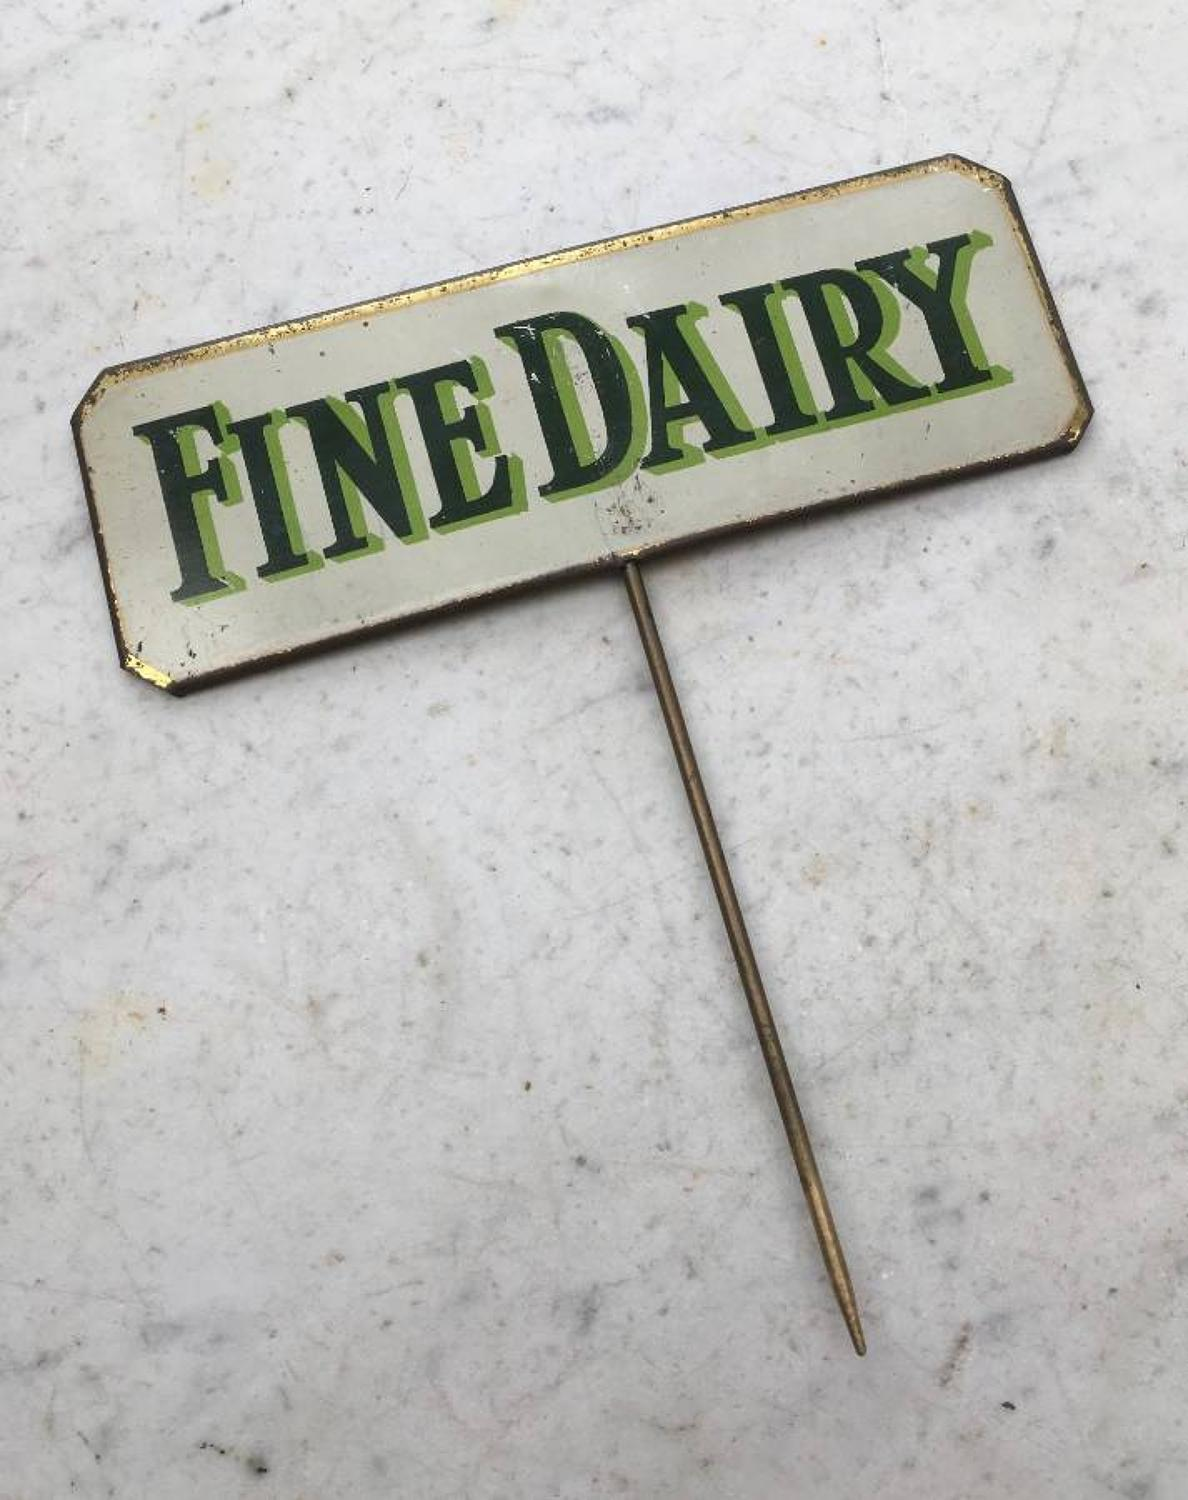 1920s Grocers Advertising Sign - Fine Dairy